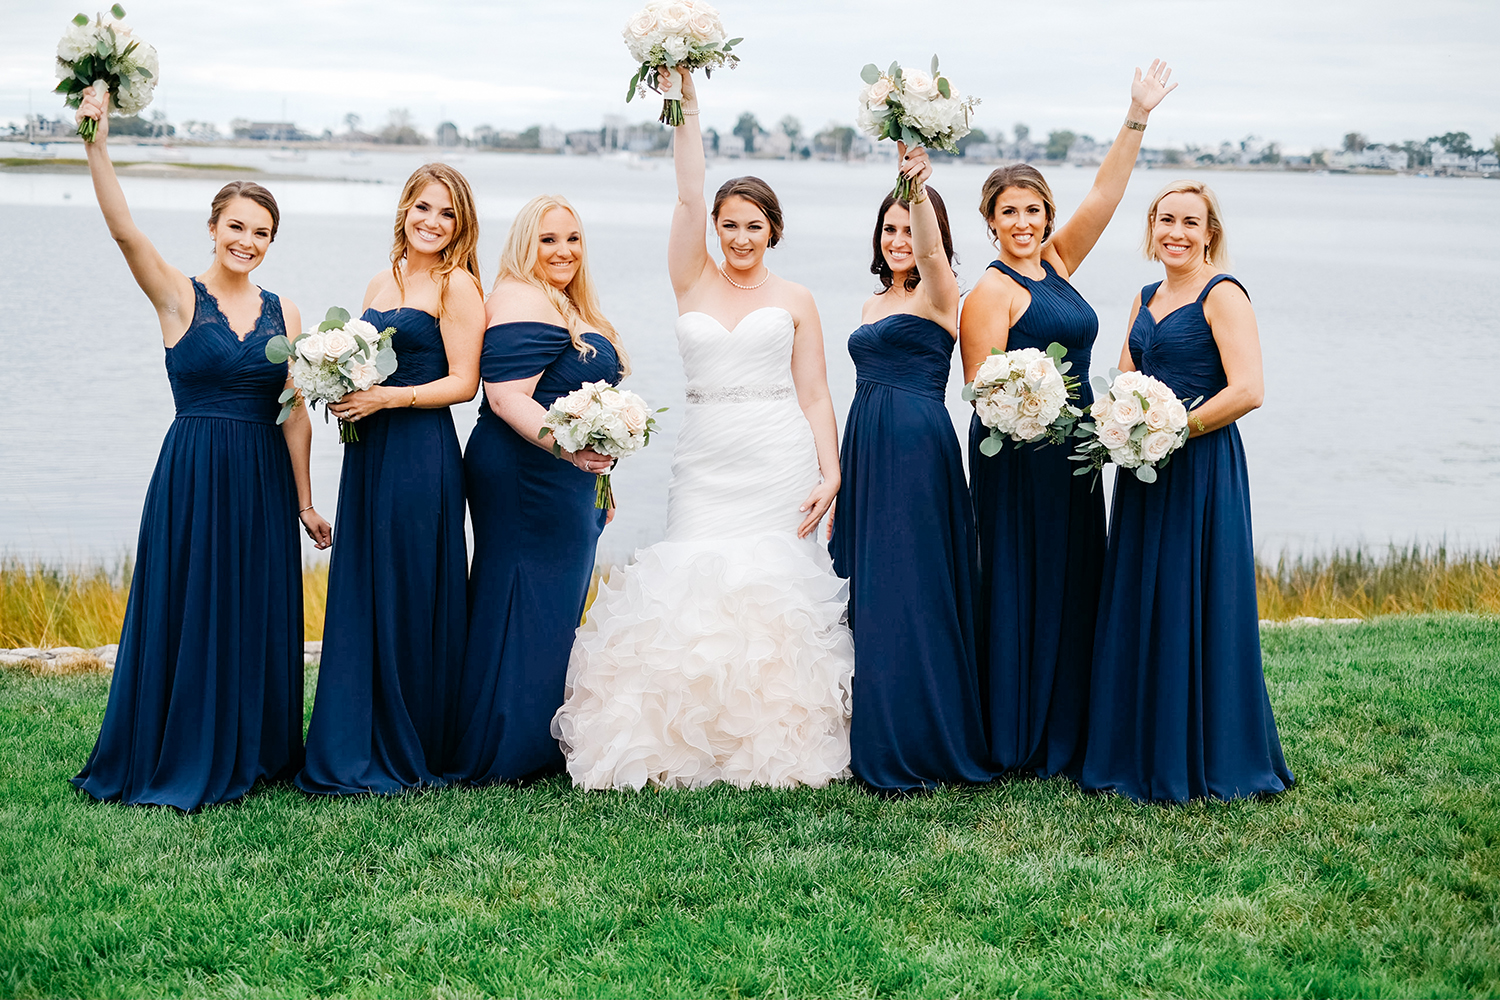 inn-at-longshore-wedding-candis-floral-creations-3